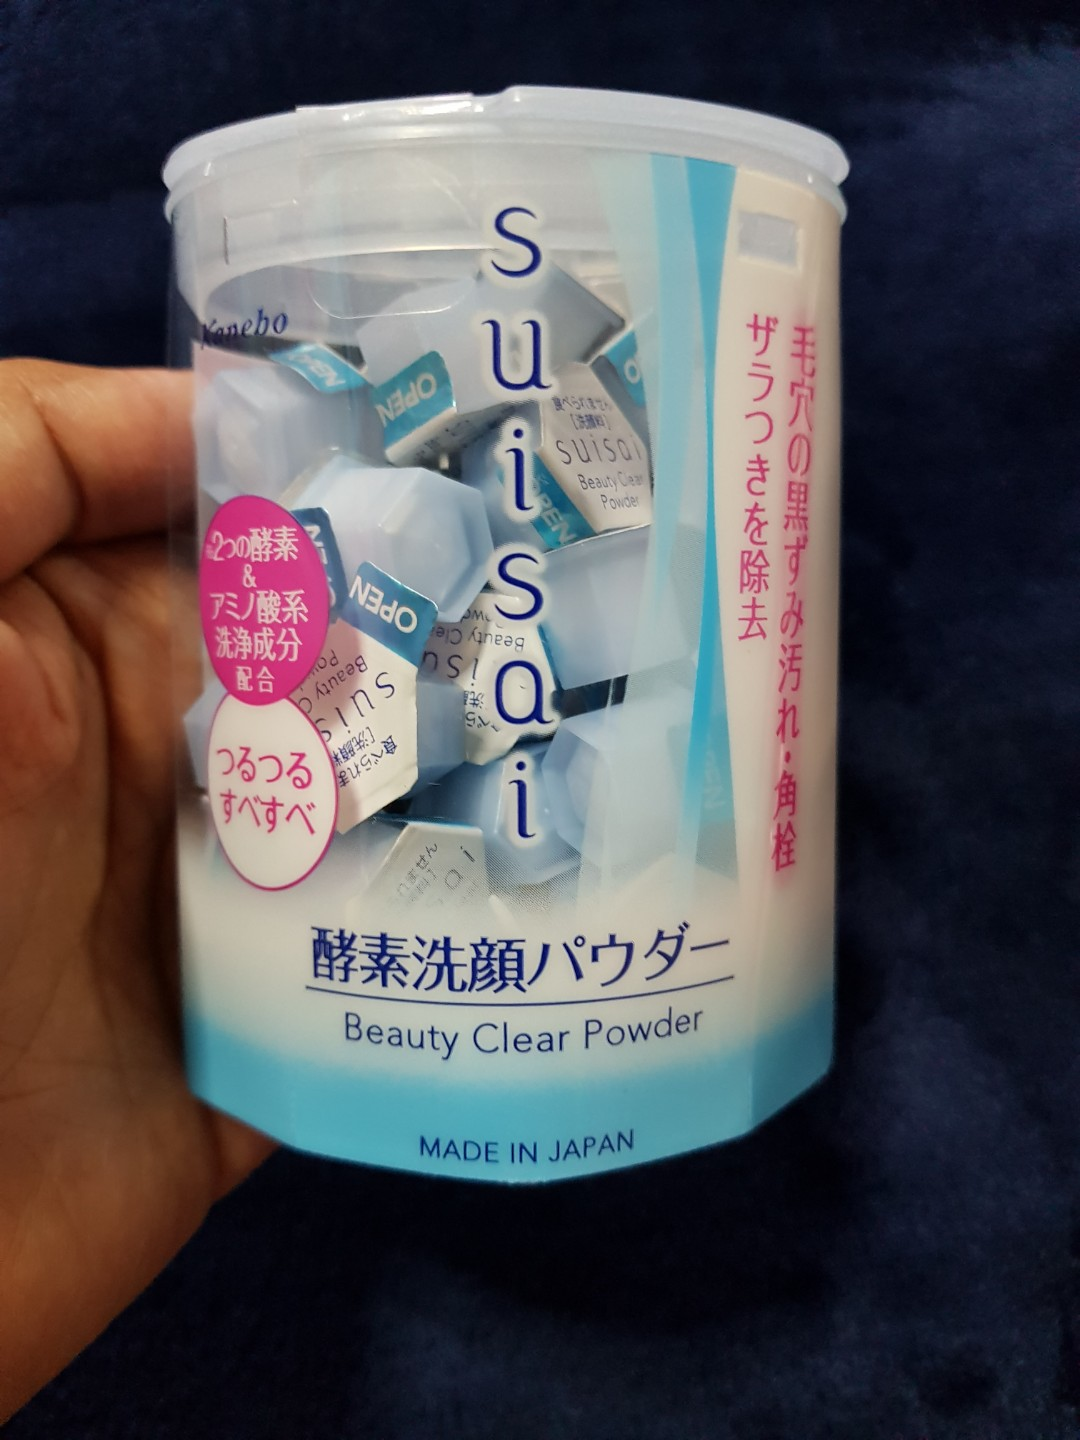 Suisai Beauty Clear Powder from Japan